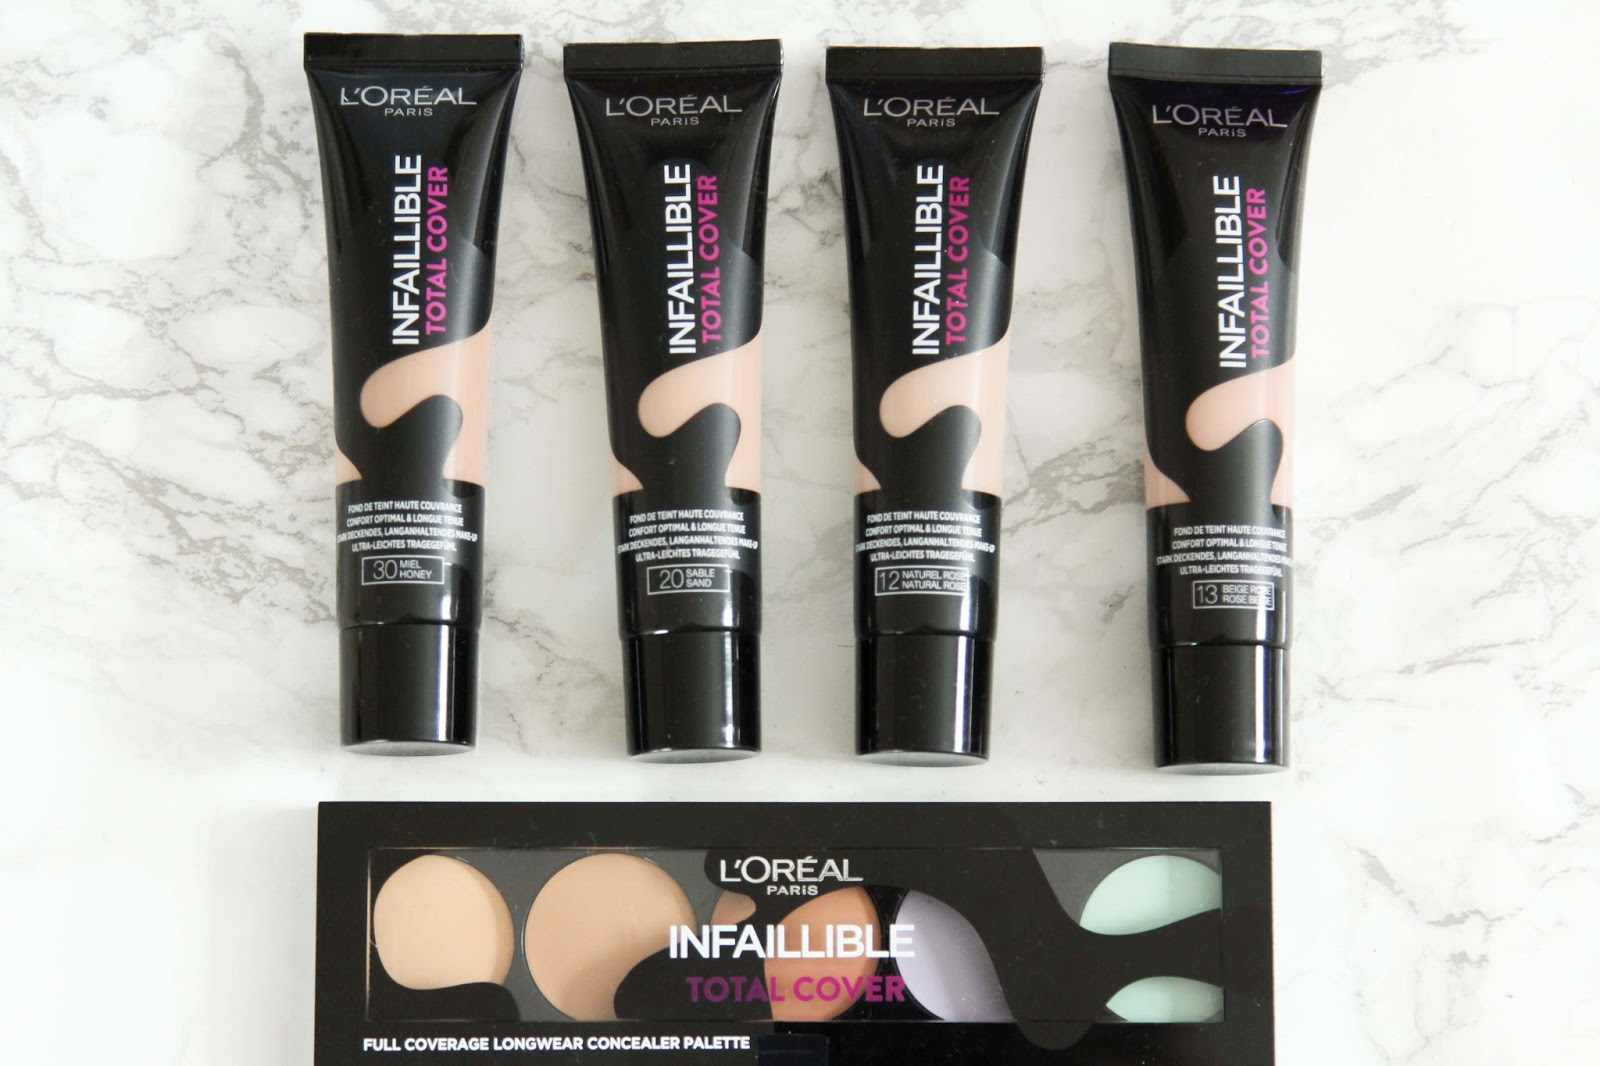 l'oreal Infaillible Total Cover Produkttest- Fashionstylebyjohanna- Beauty-Blogger-Infallible Matte Foundation von L´Oréal Paris